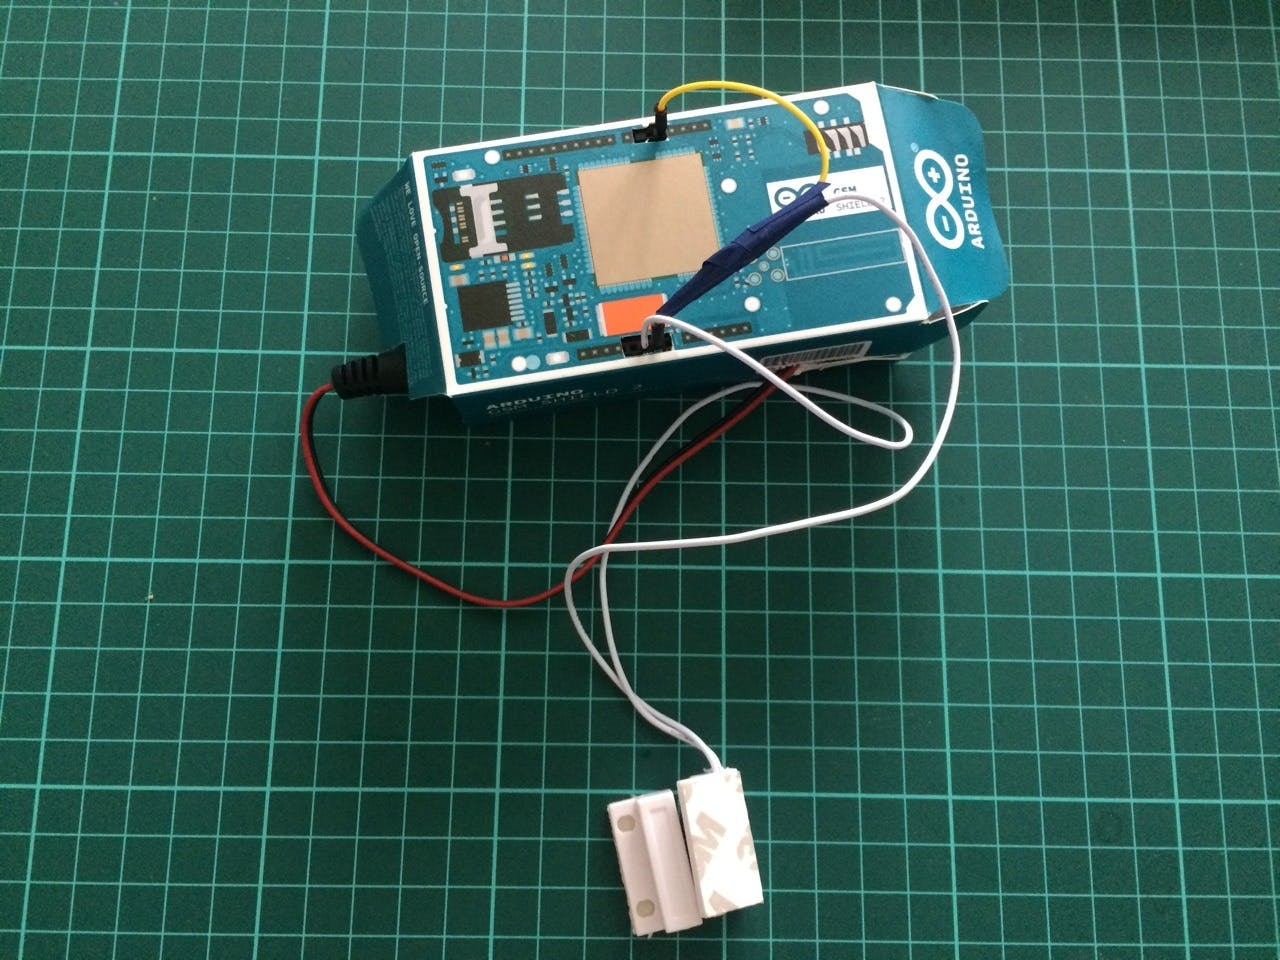 Soldered project packaged into a box from GSM shield with connected 9V battery.